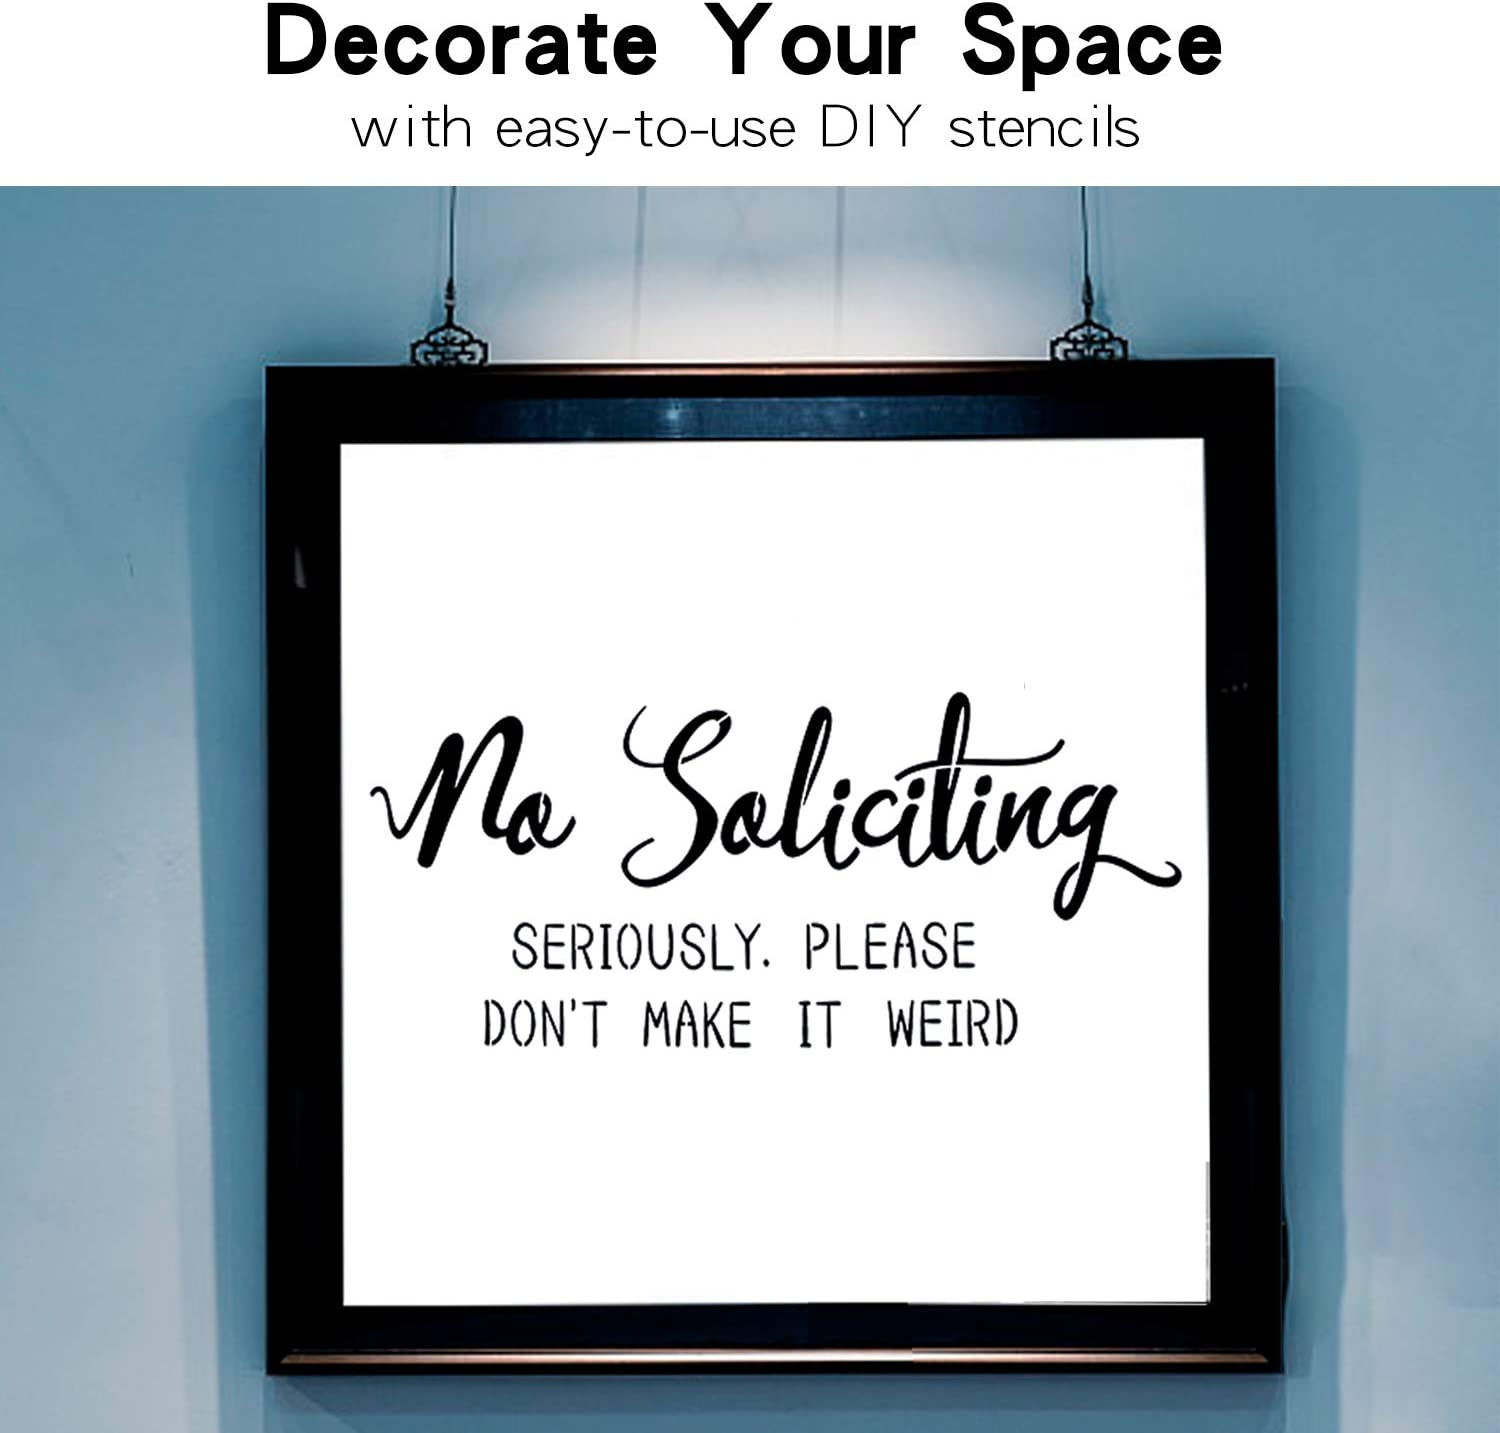 Create Beautiful Wood Stencil Signs with This Reusable Word Stencil Set of 3 Individual Stencils for Home Decor /& DIY Projects Large Vertical Welcome Sign Stencils for Painting on Wood